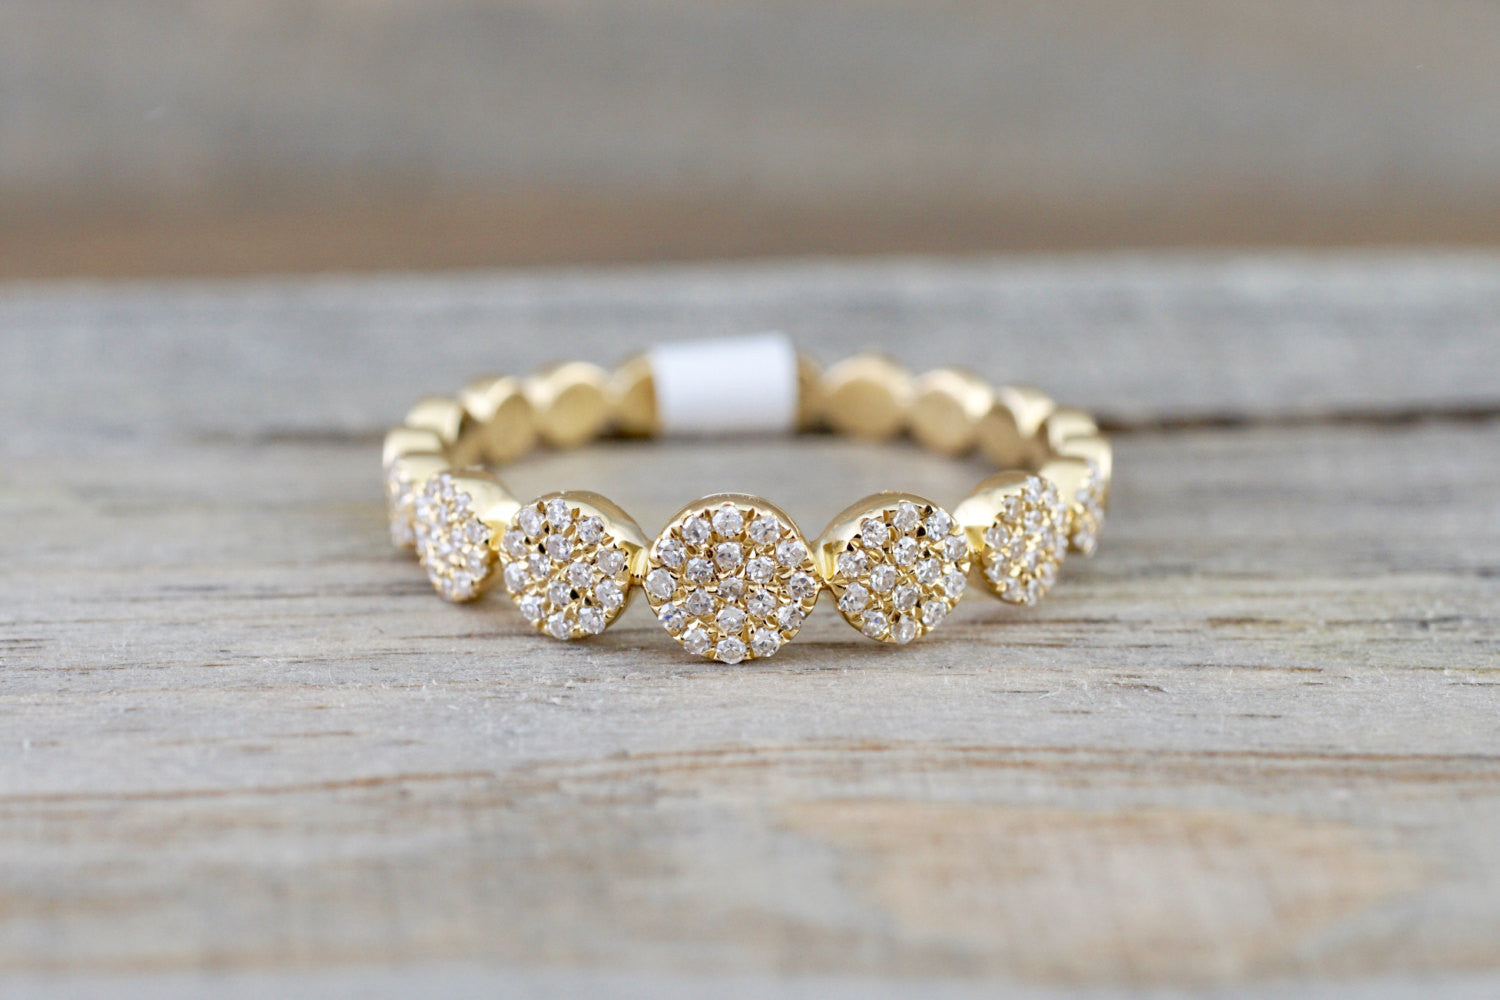 14 Karat Yellow Gold Dainty Pave Circle Diamond Band Ring - Brilliant Facets